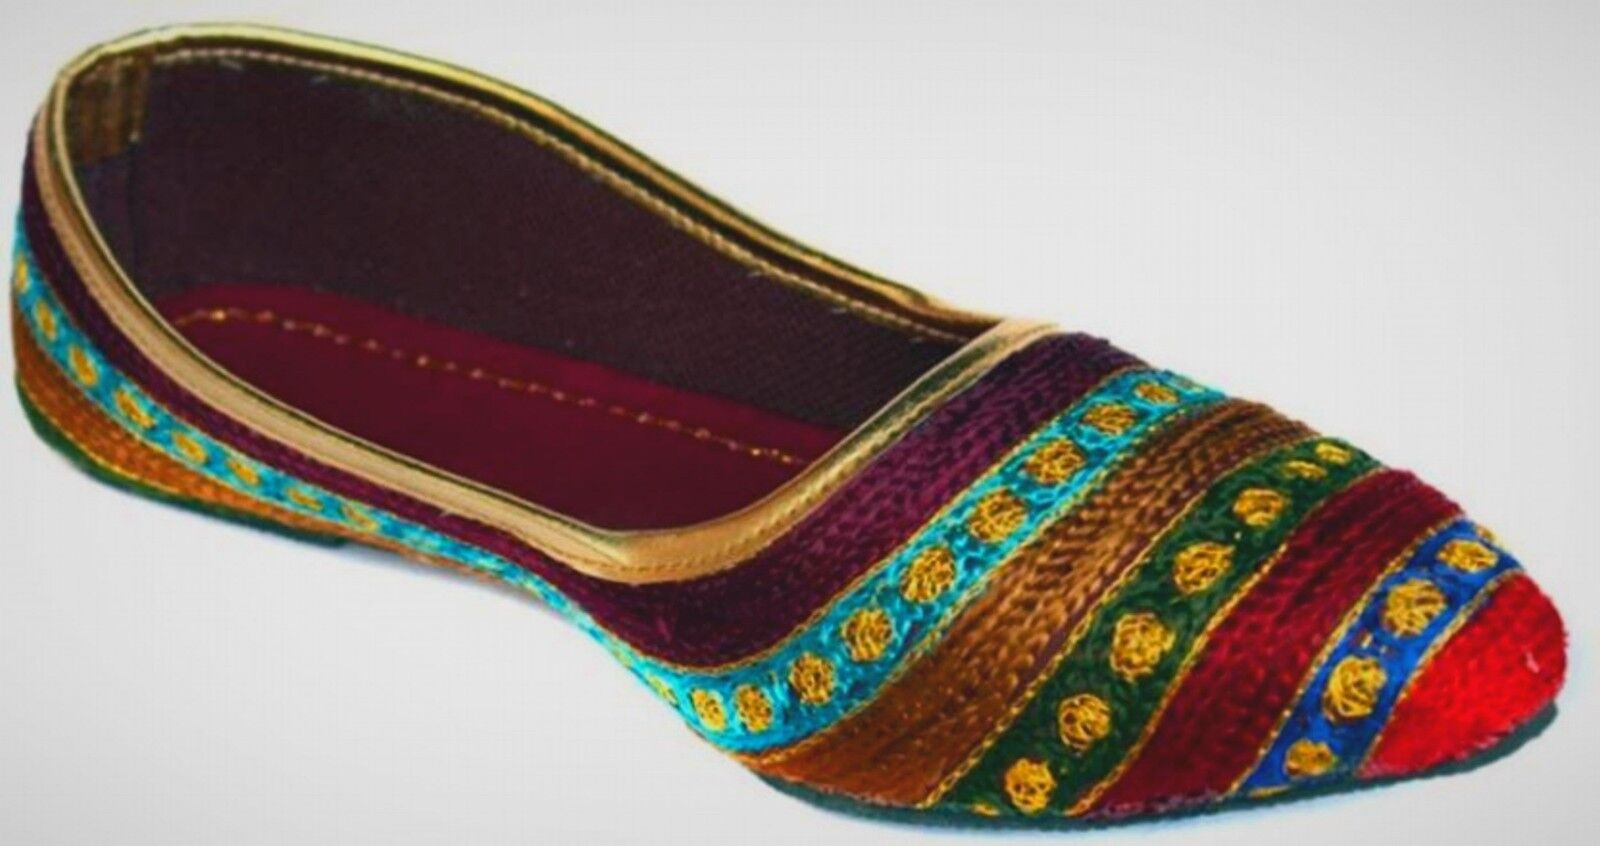 StepIndia Party Wear Shoes Ethnic Rajasthani Jaipuri Bellies Shoes Wear for ladies and Girl 1e6b41